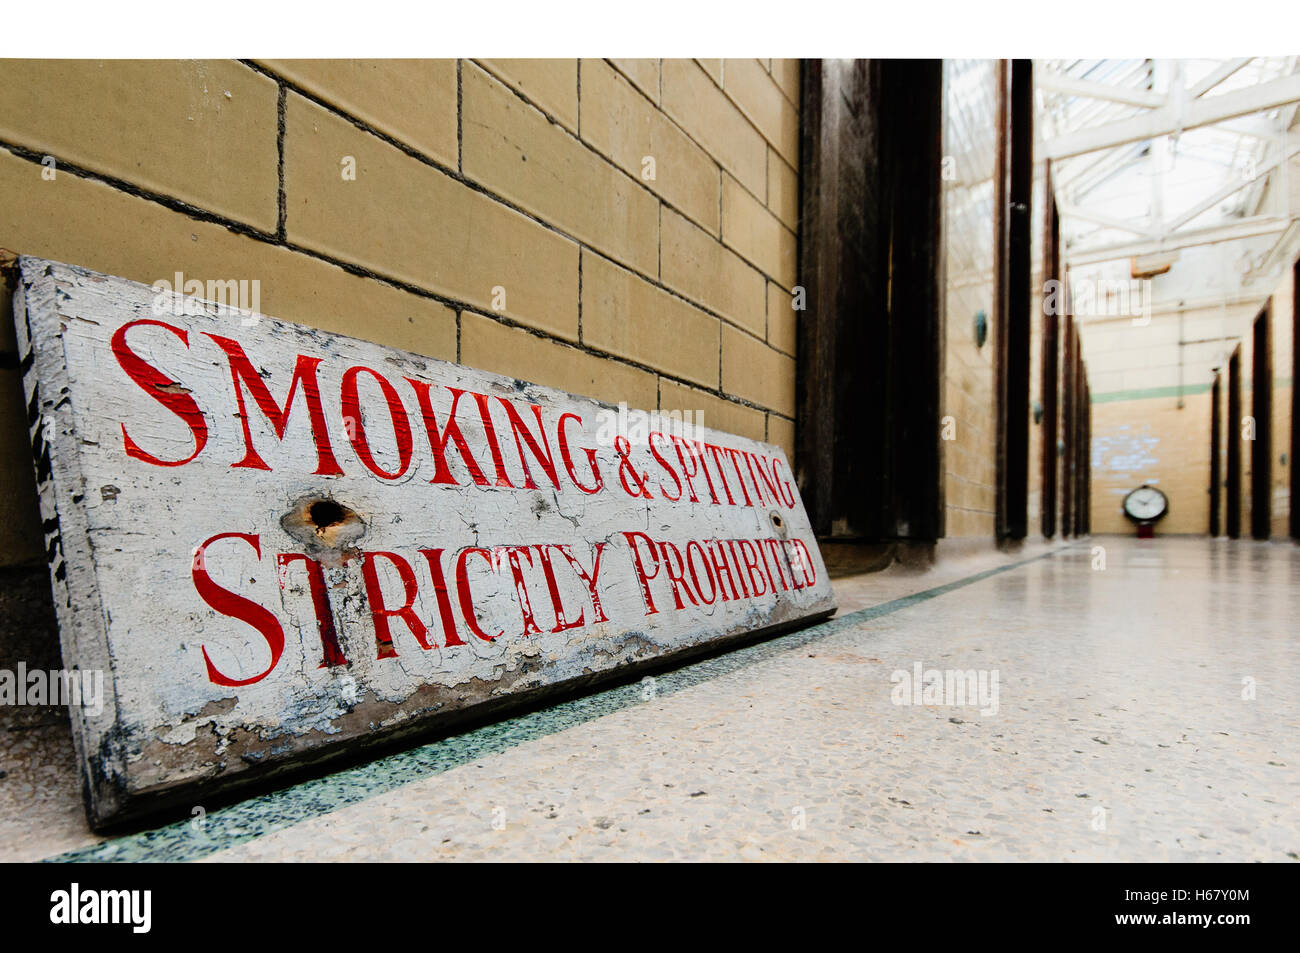 Sign in a very old public baths warning people that smoking and spitting are strictly prohibited - Stock Image